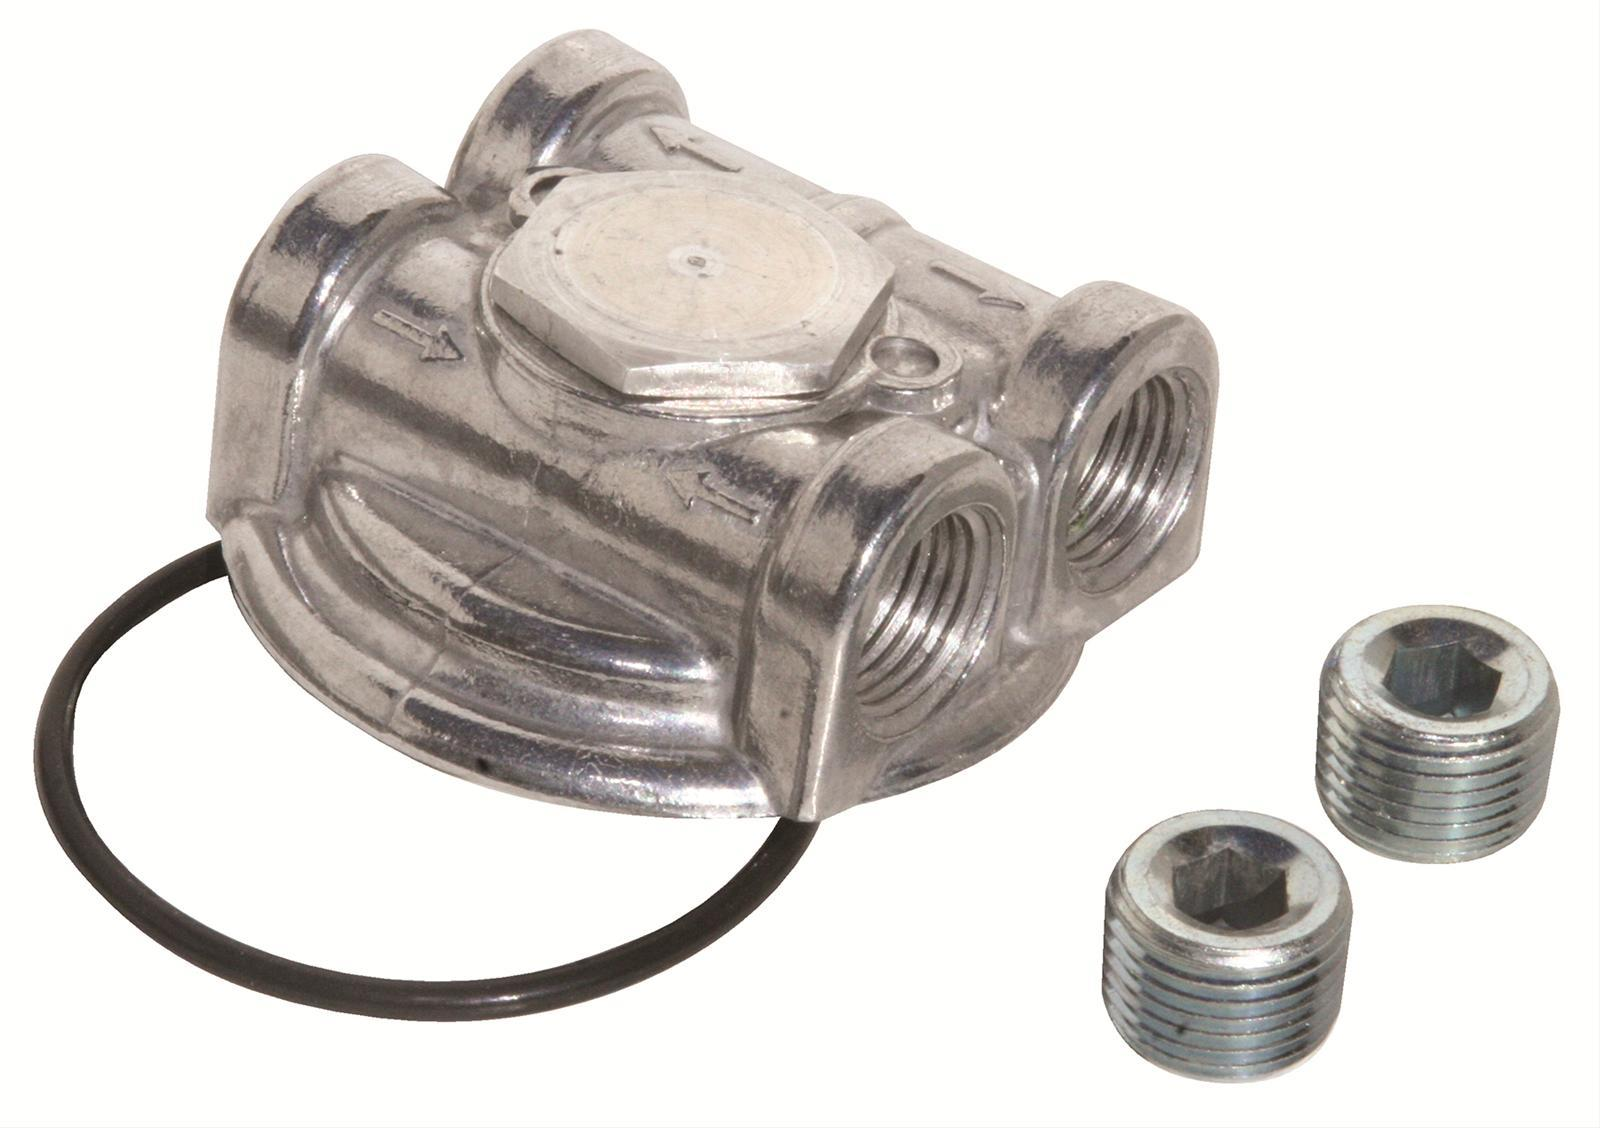 Perma Cool 3791 Oil Filter Adapter, Bypass, 3/4-16 in Center Thread, 1/2 in NPT Female Inlet / Outlet, O-Ring / Plugs, Included, Aluminum, Natural, Each